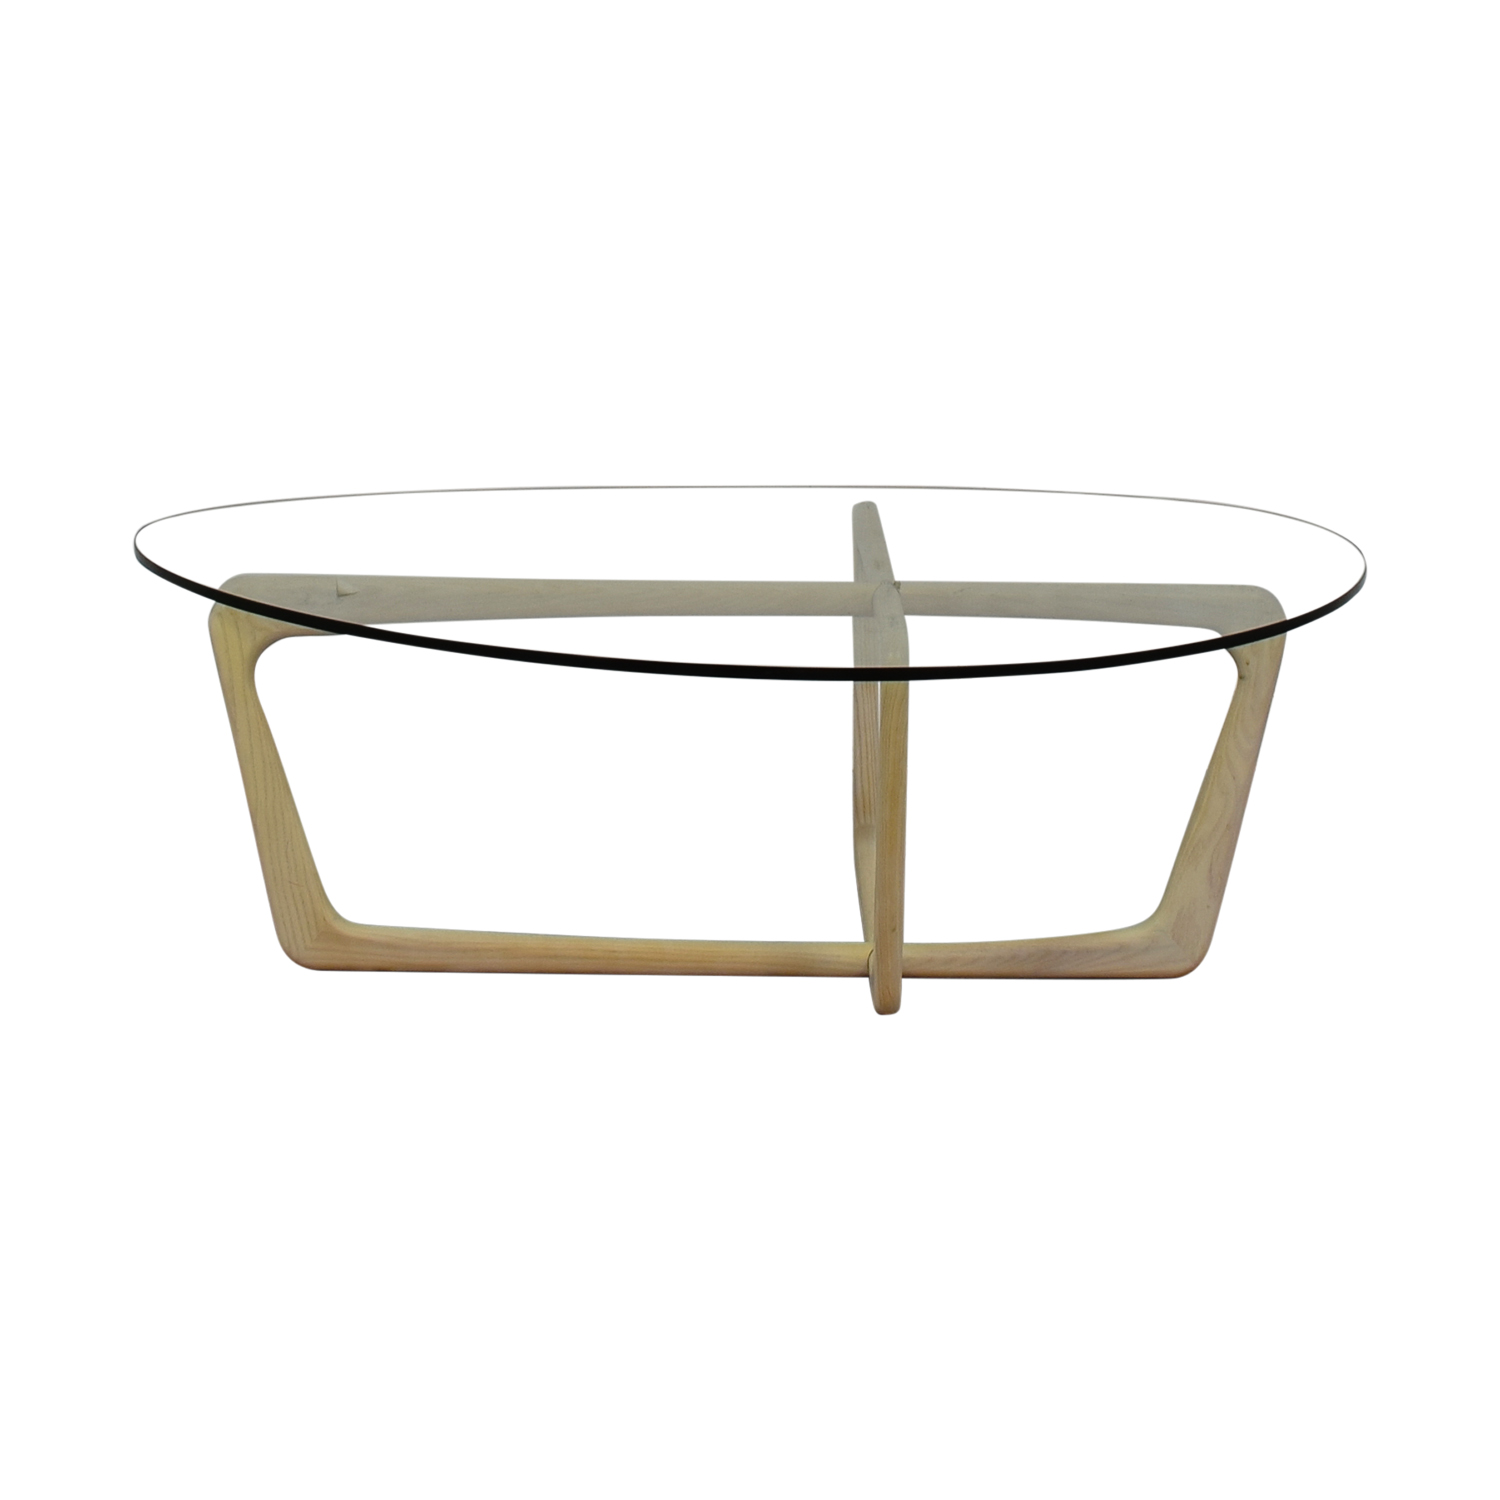 Room & Board Room & Board Dunn Beige and Glass Coffee Table discount